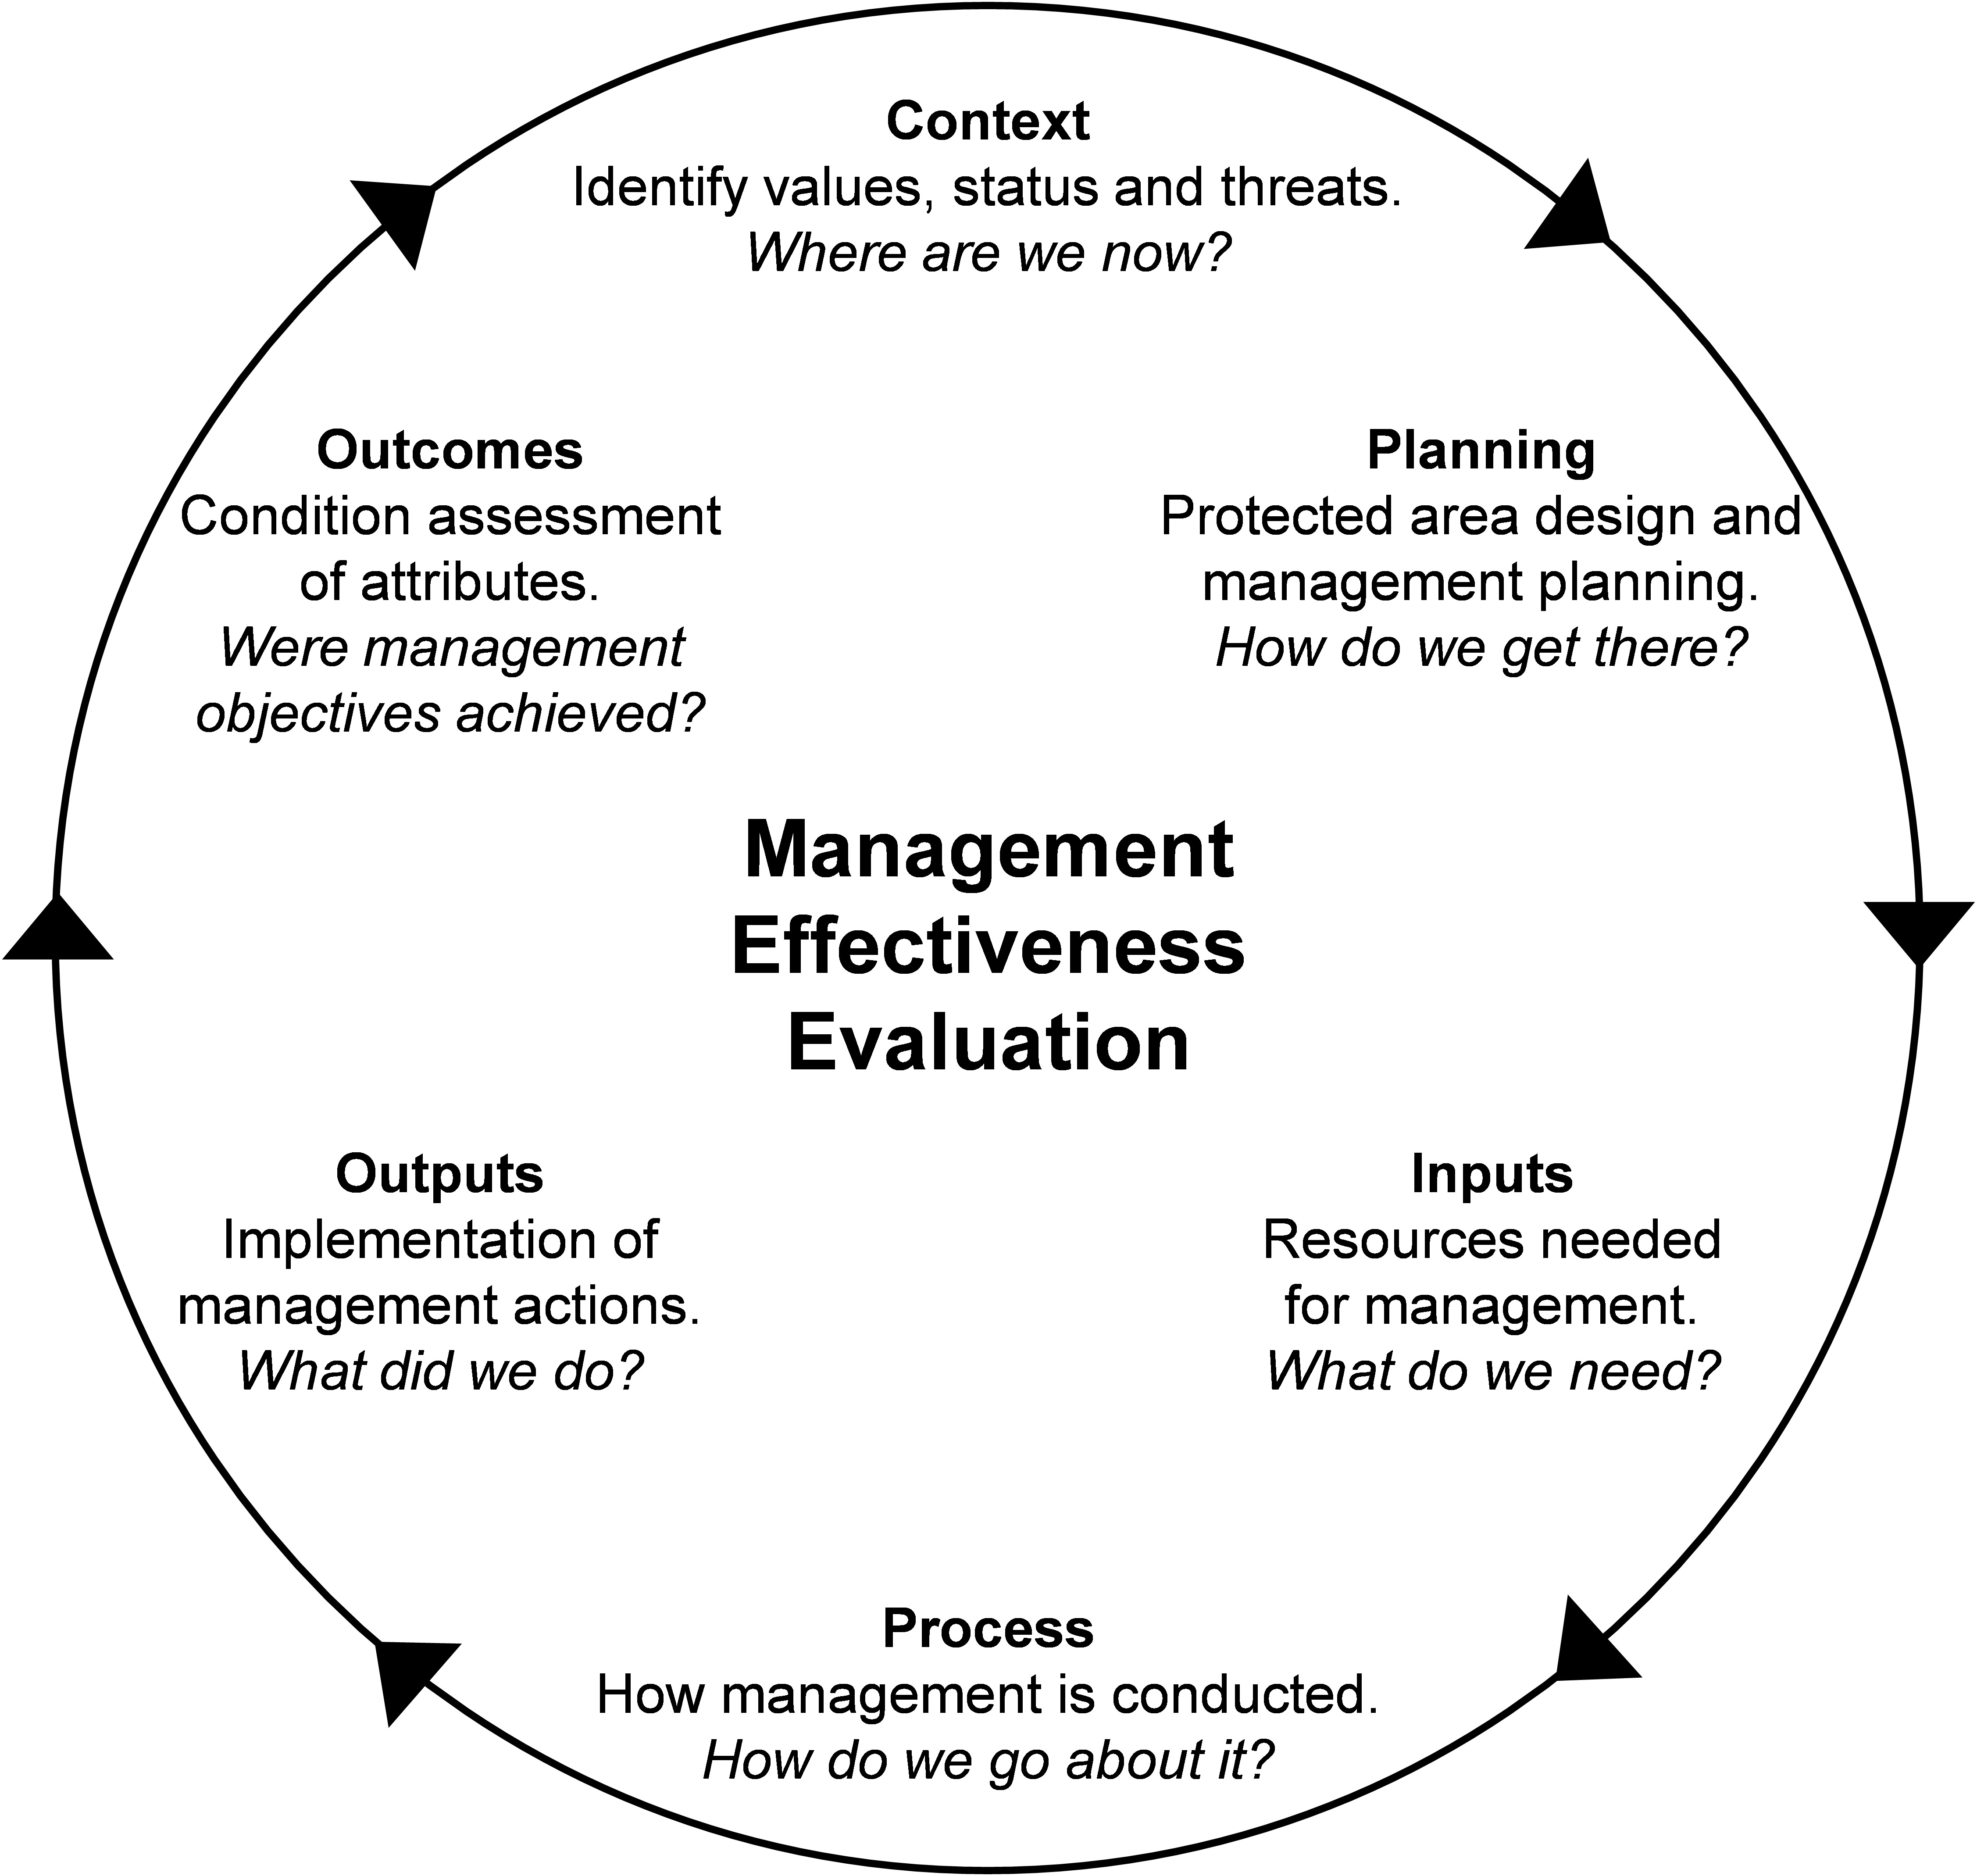 managerial effectiveness Managerial effectiveness vs efficiency managerial effectiveness is a leader's ability to achieve desired results how well he applies his skills and.